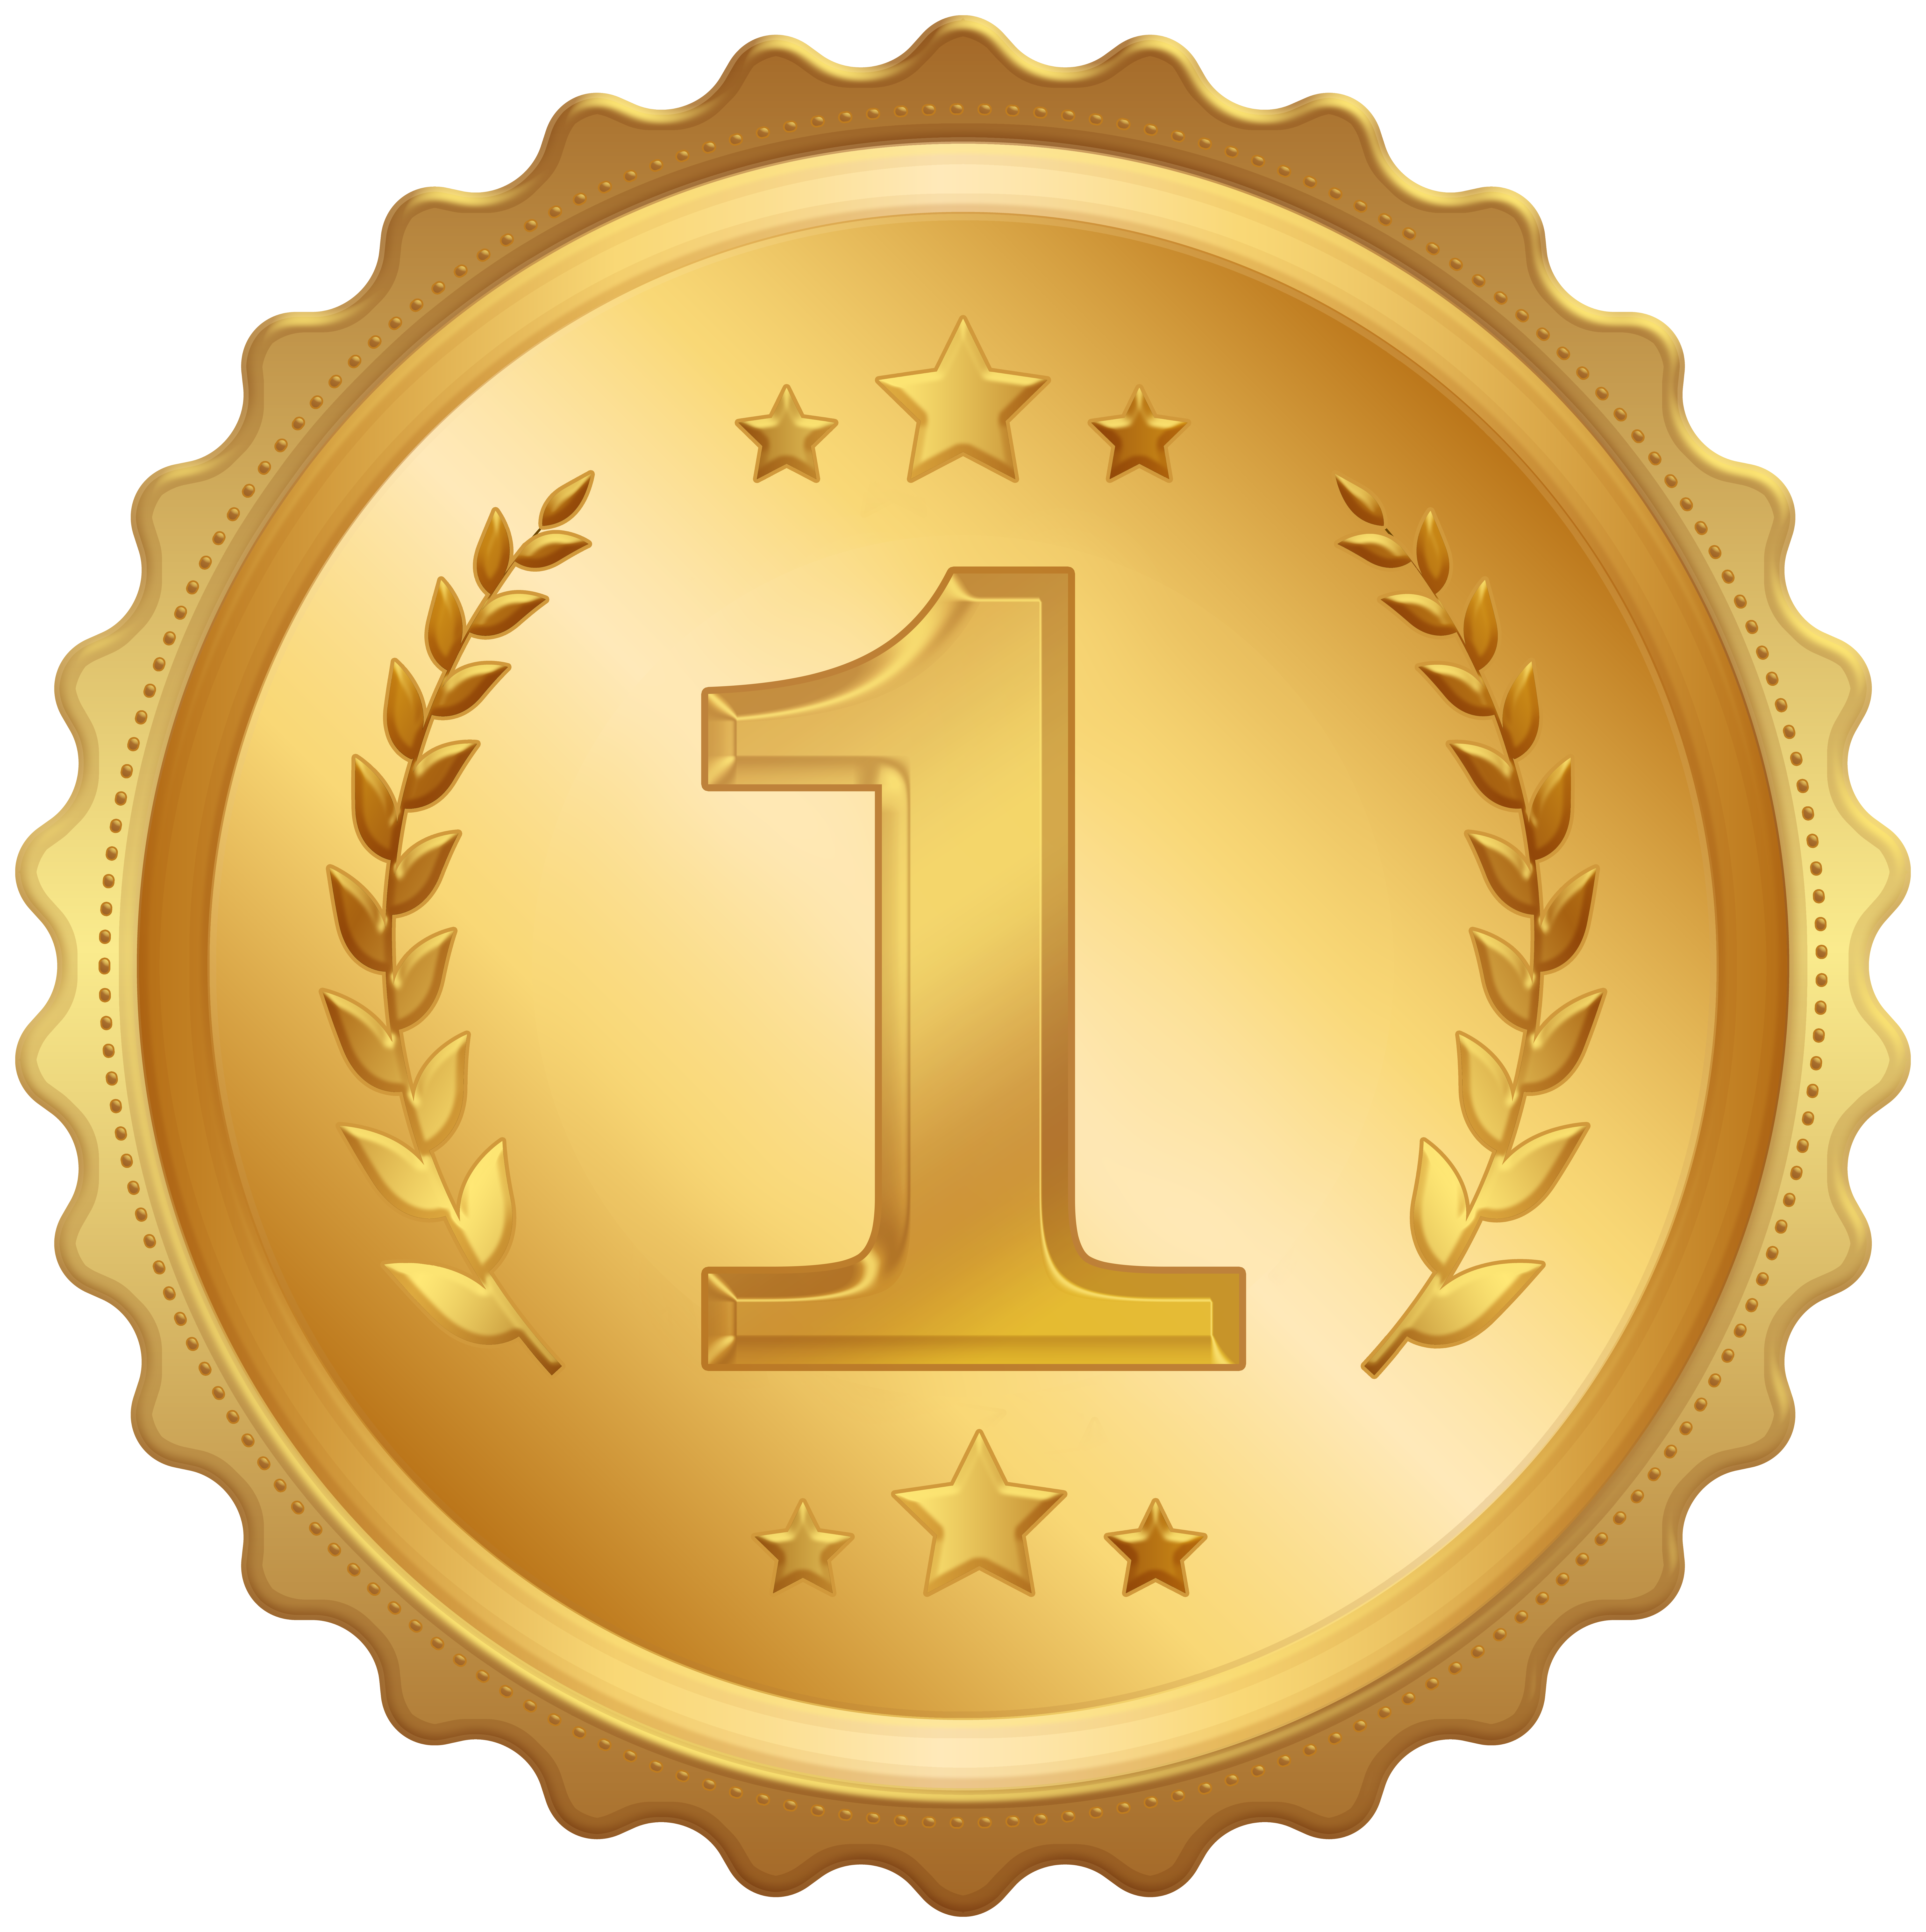 First Place Medal Badge Clipart Image.